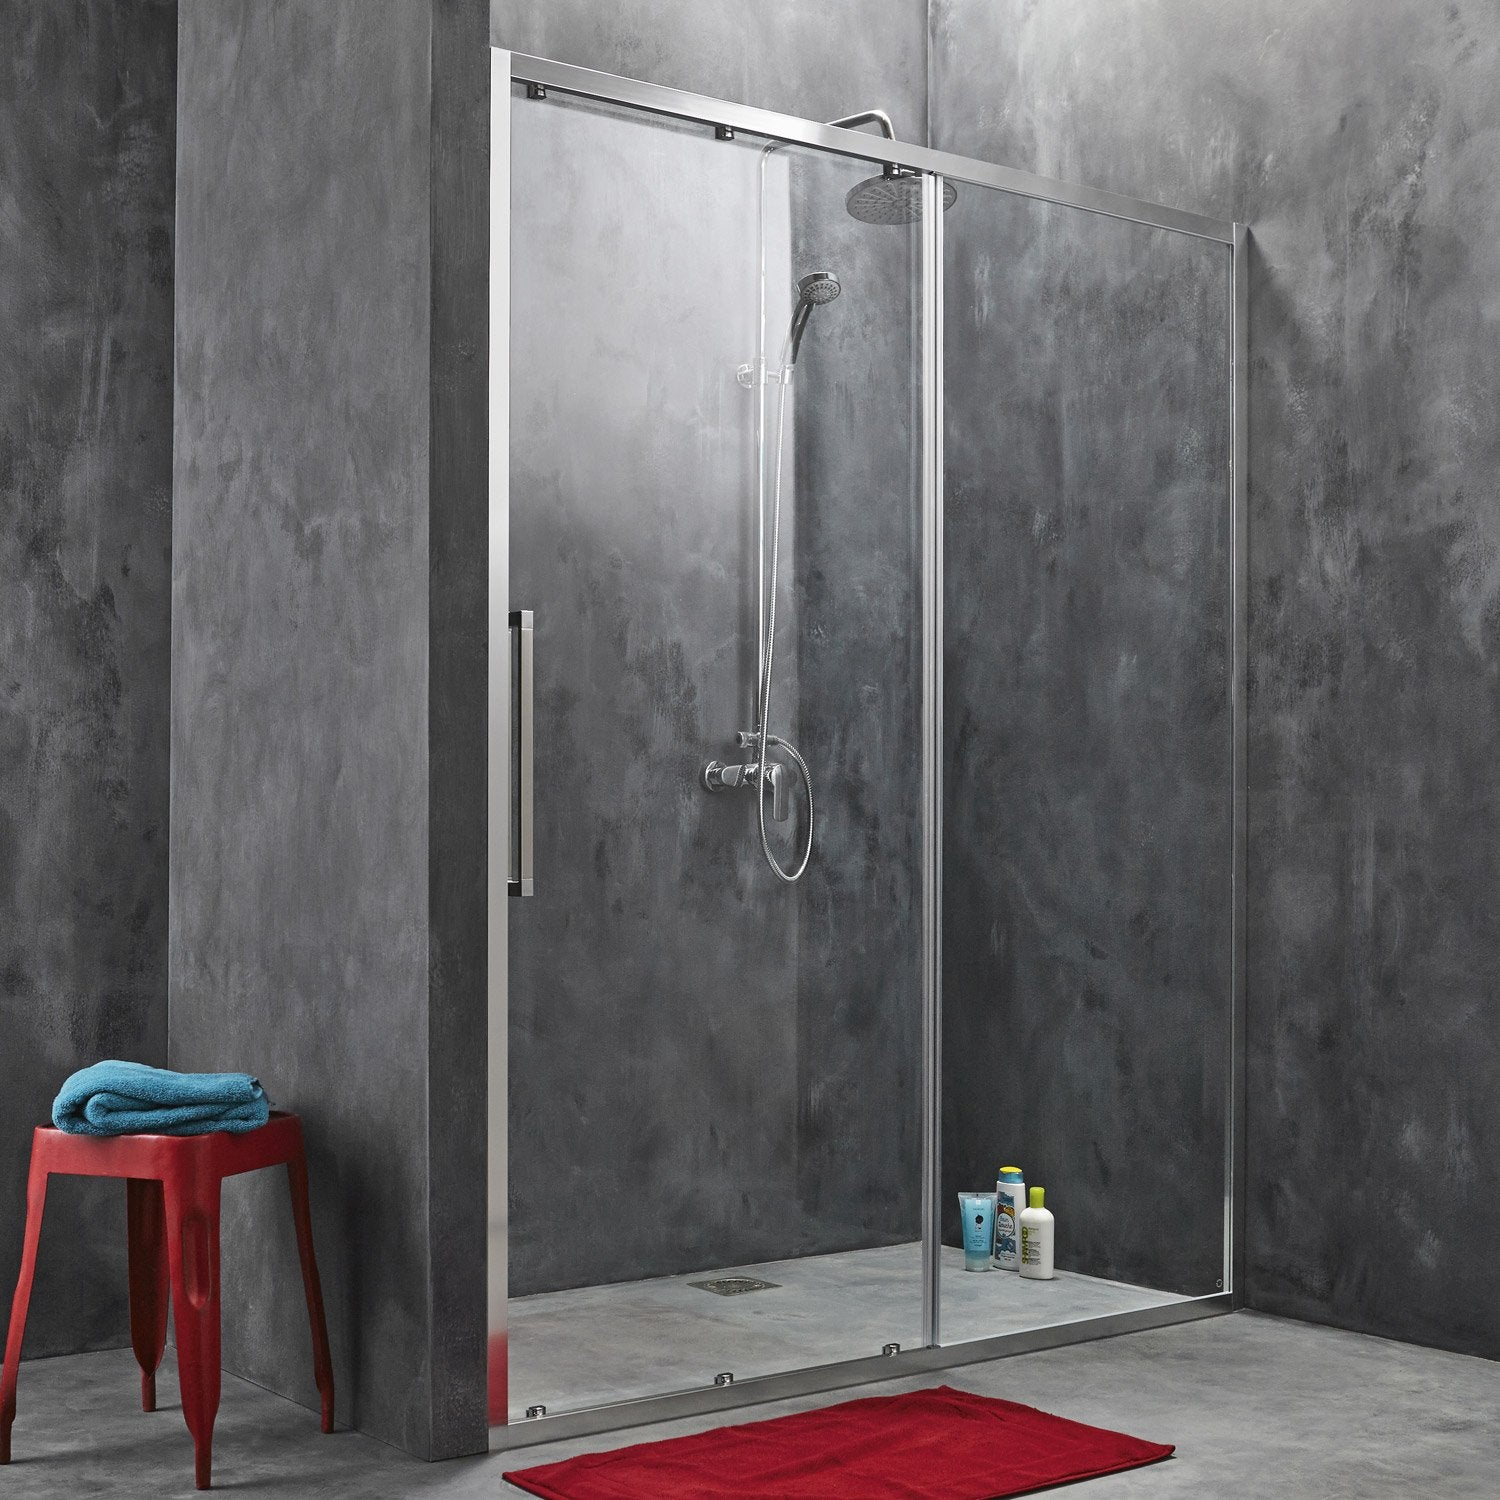 Porte de douche coulissante sensea purity 3 verre transparent chrom 170 cm - Leroy merlin porte coulissante verre ...